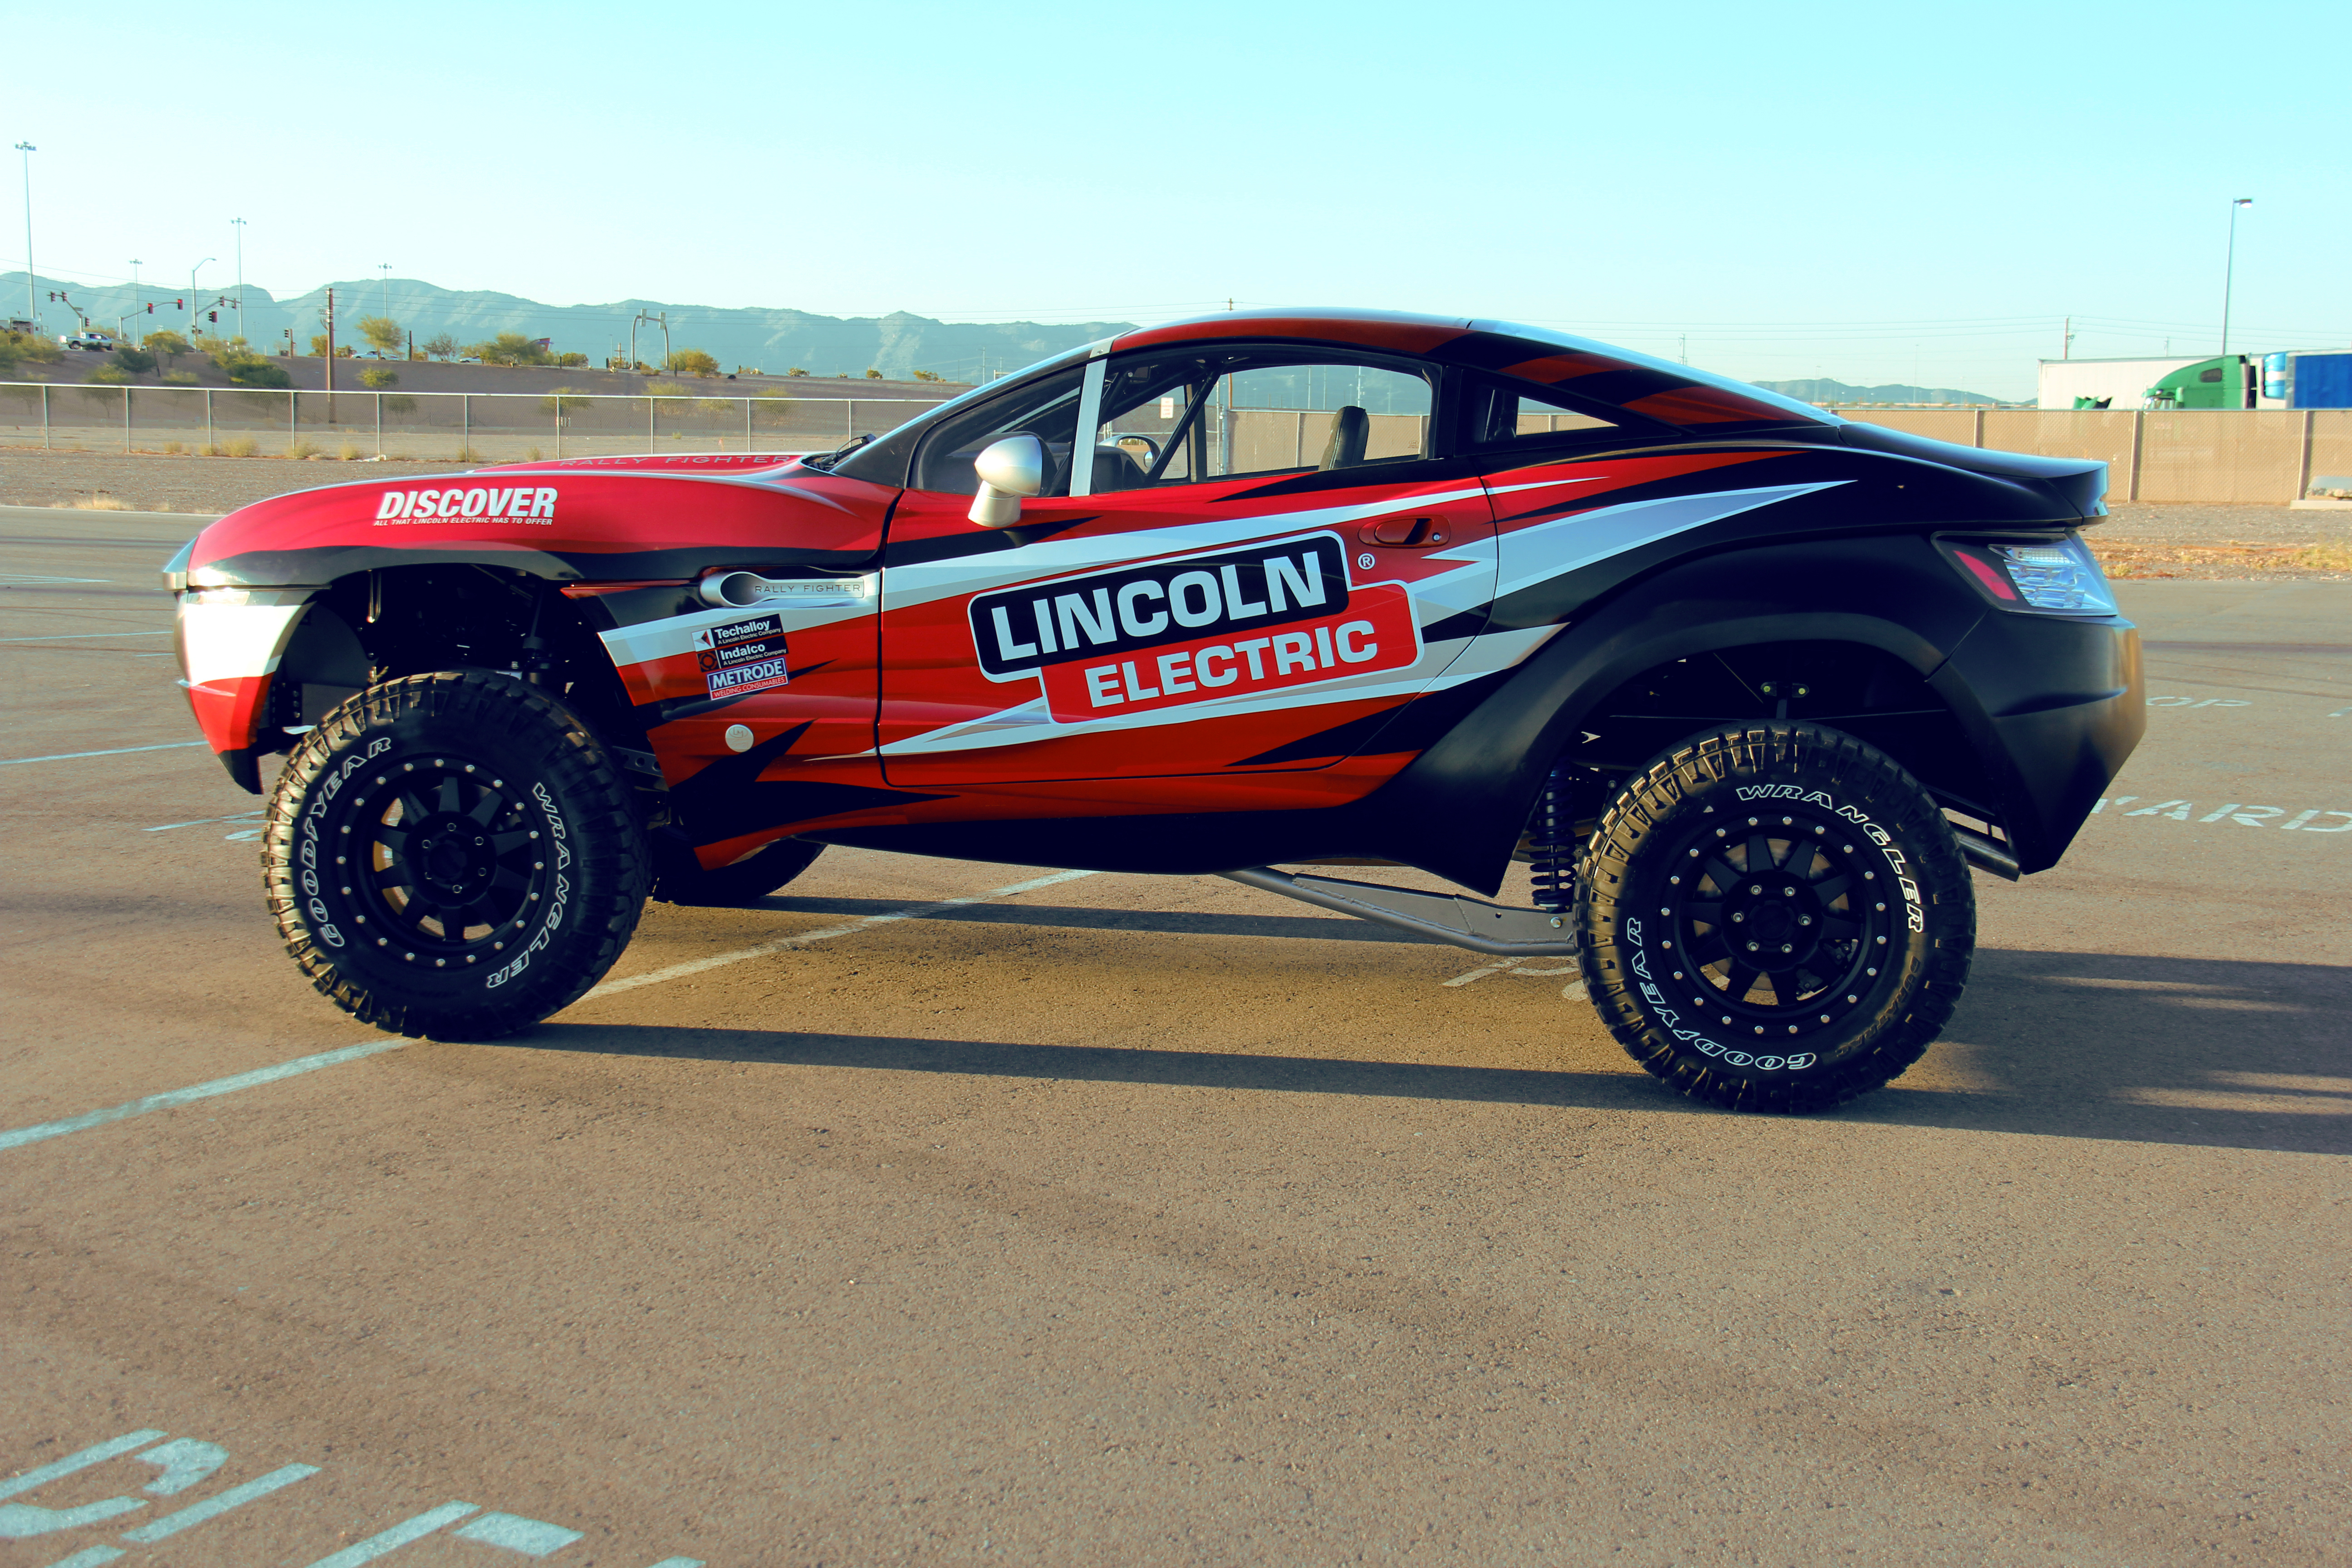 Lincoln Electric Rally Fighter Wrap